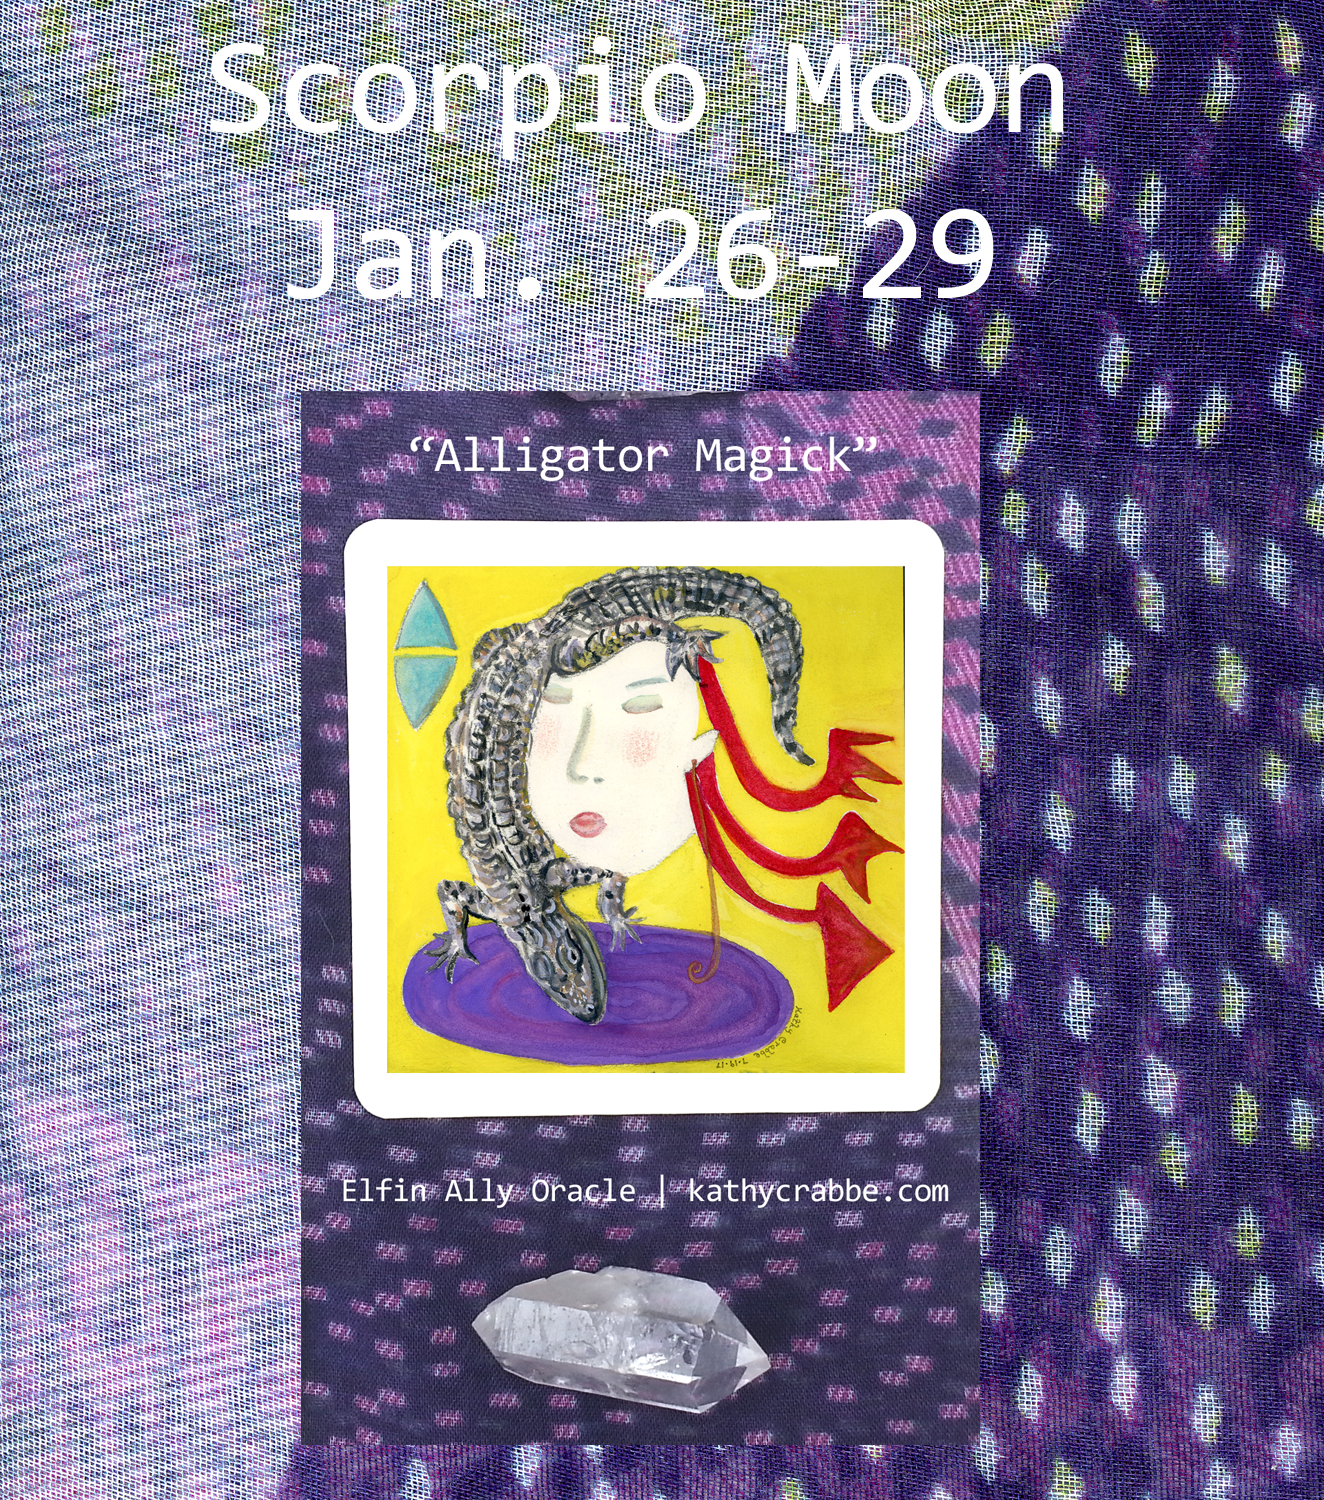 Alligator - Scorpio Moon Elfin Ally Oracle by Kathy Crabbe